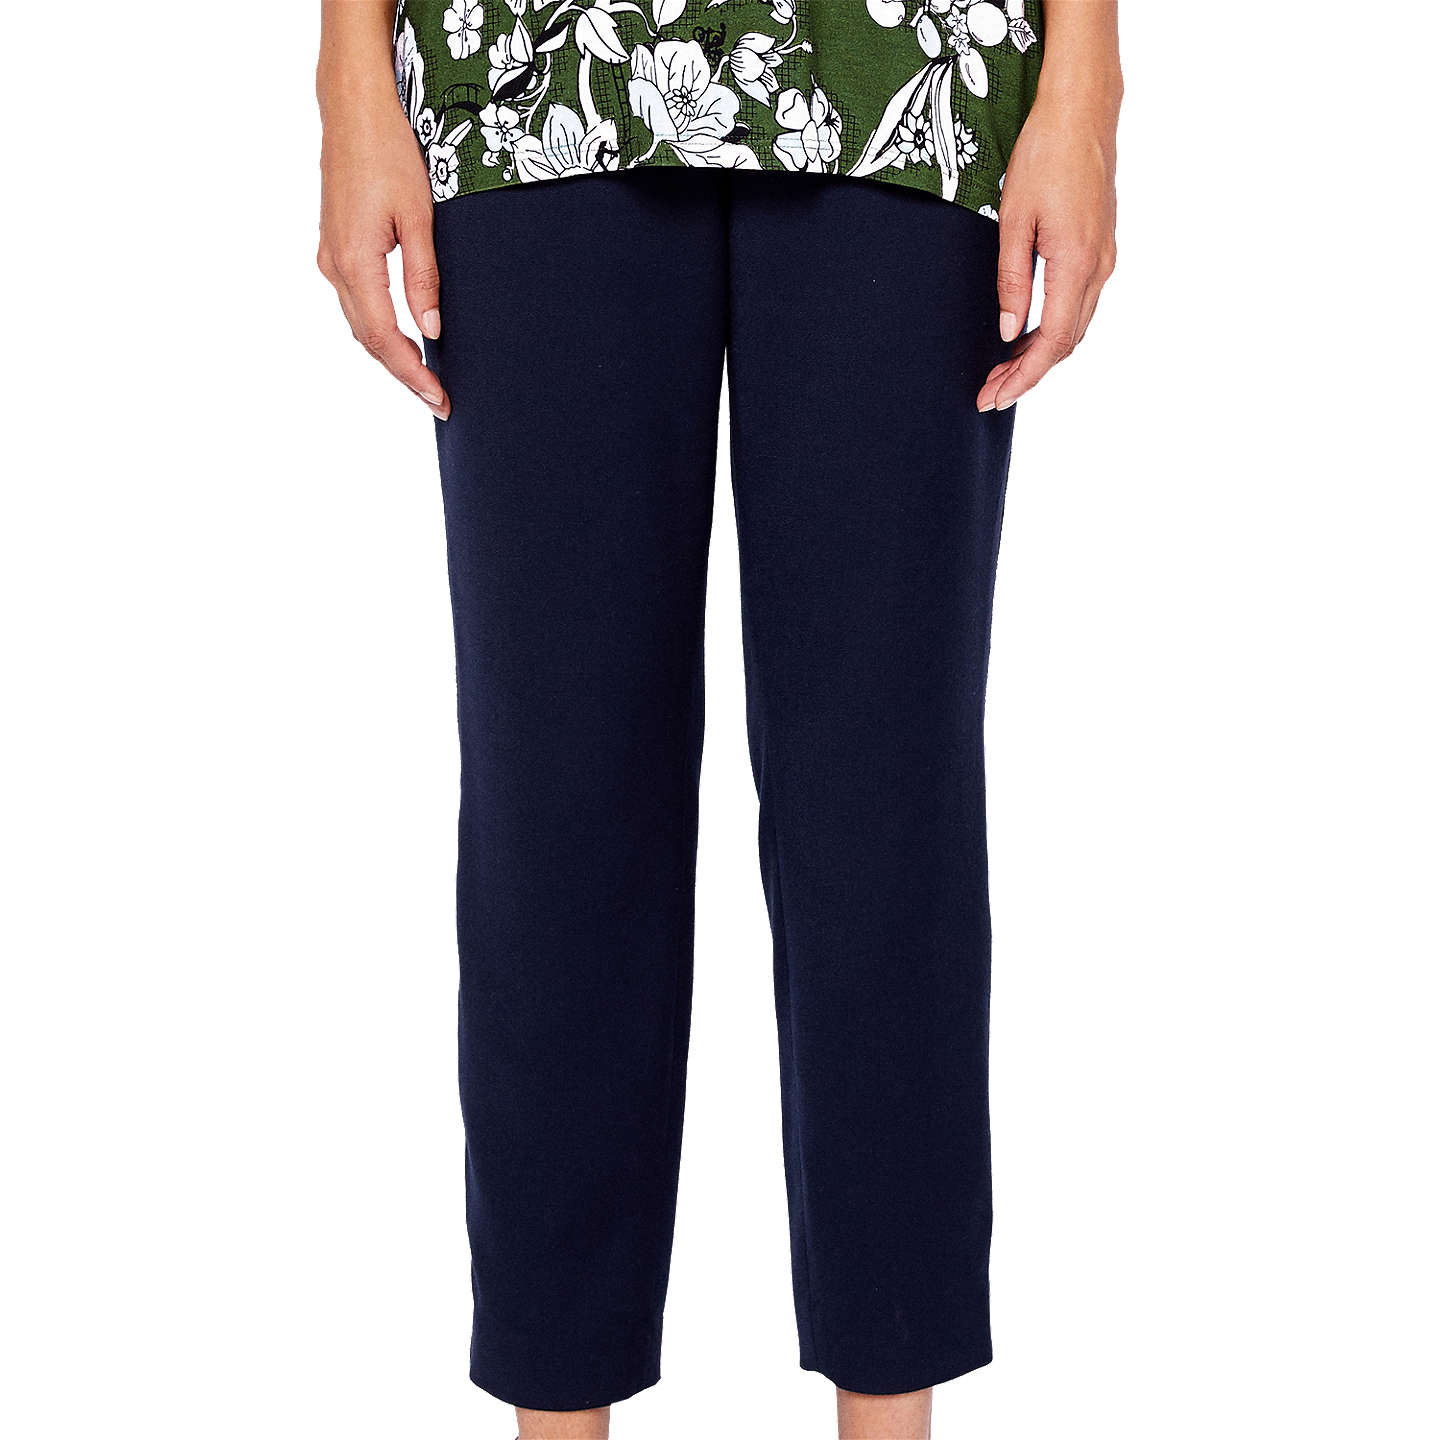 BuyTed Baker Baya Side Stripe Trousers, Navy, 0 Online at johnlewis.com